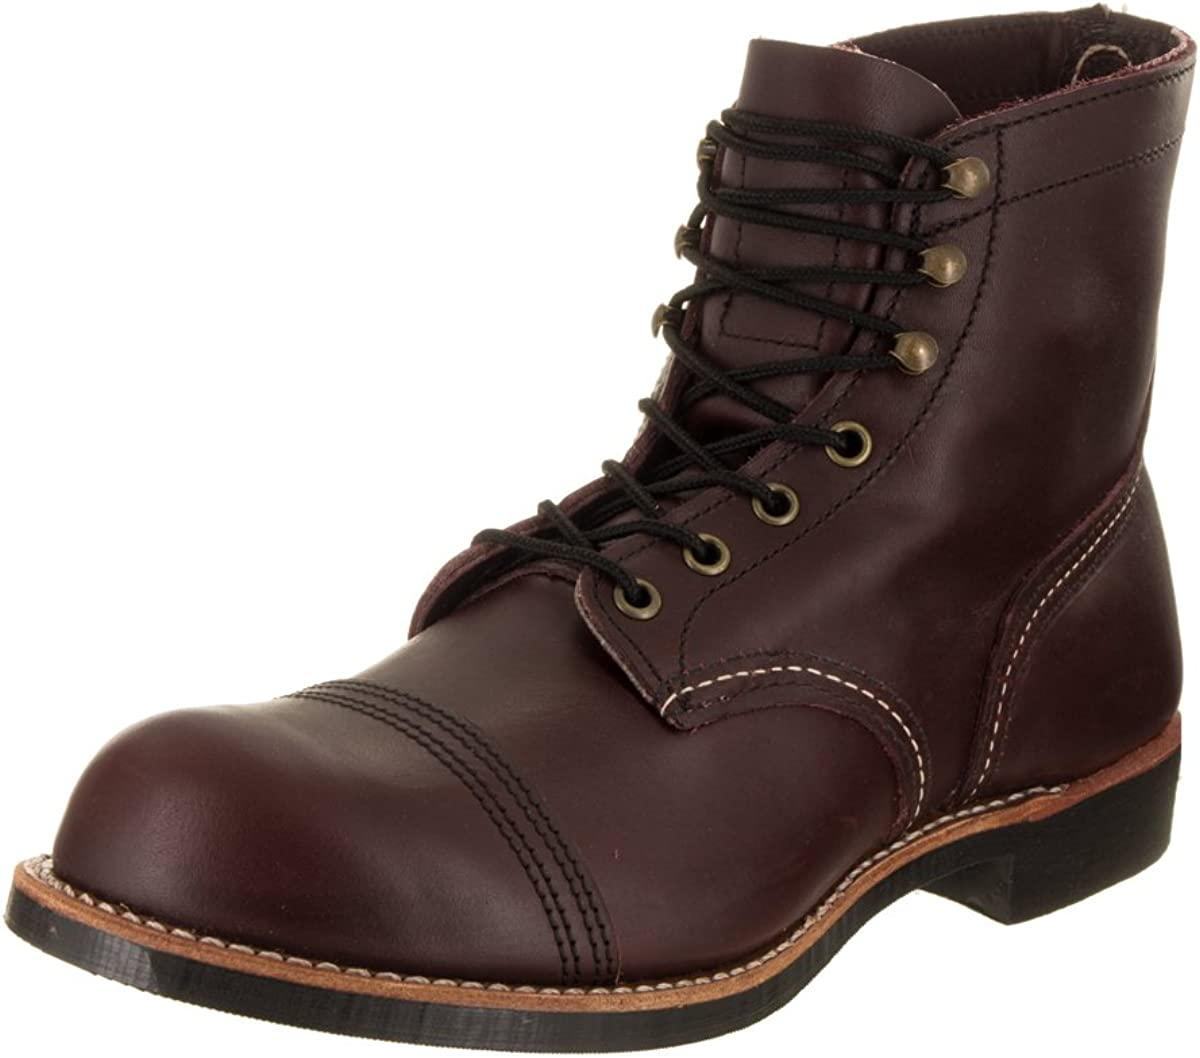 Men's Vintage Workwear Inspired Clothing Red Wing Heritage Mens Iron Ranger 6 Vibram Boot $339.95 AT vintagedancer.com